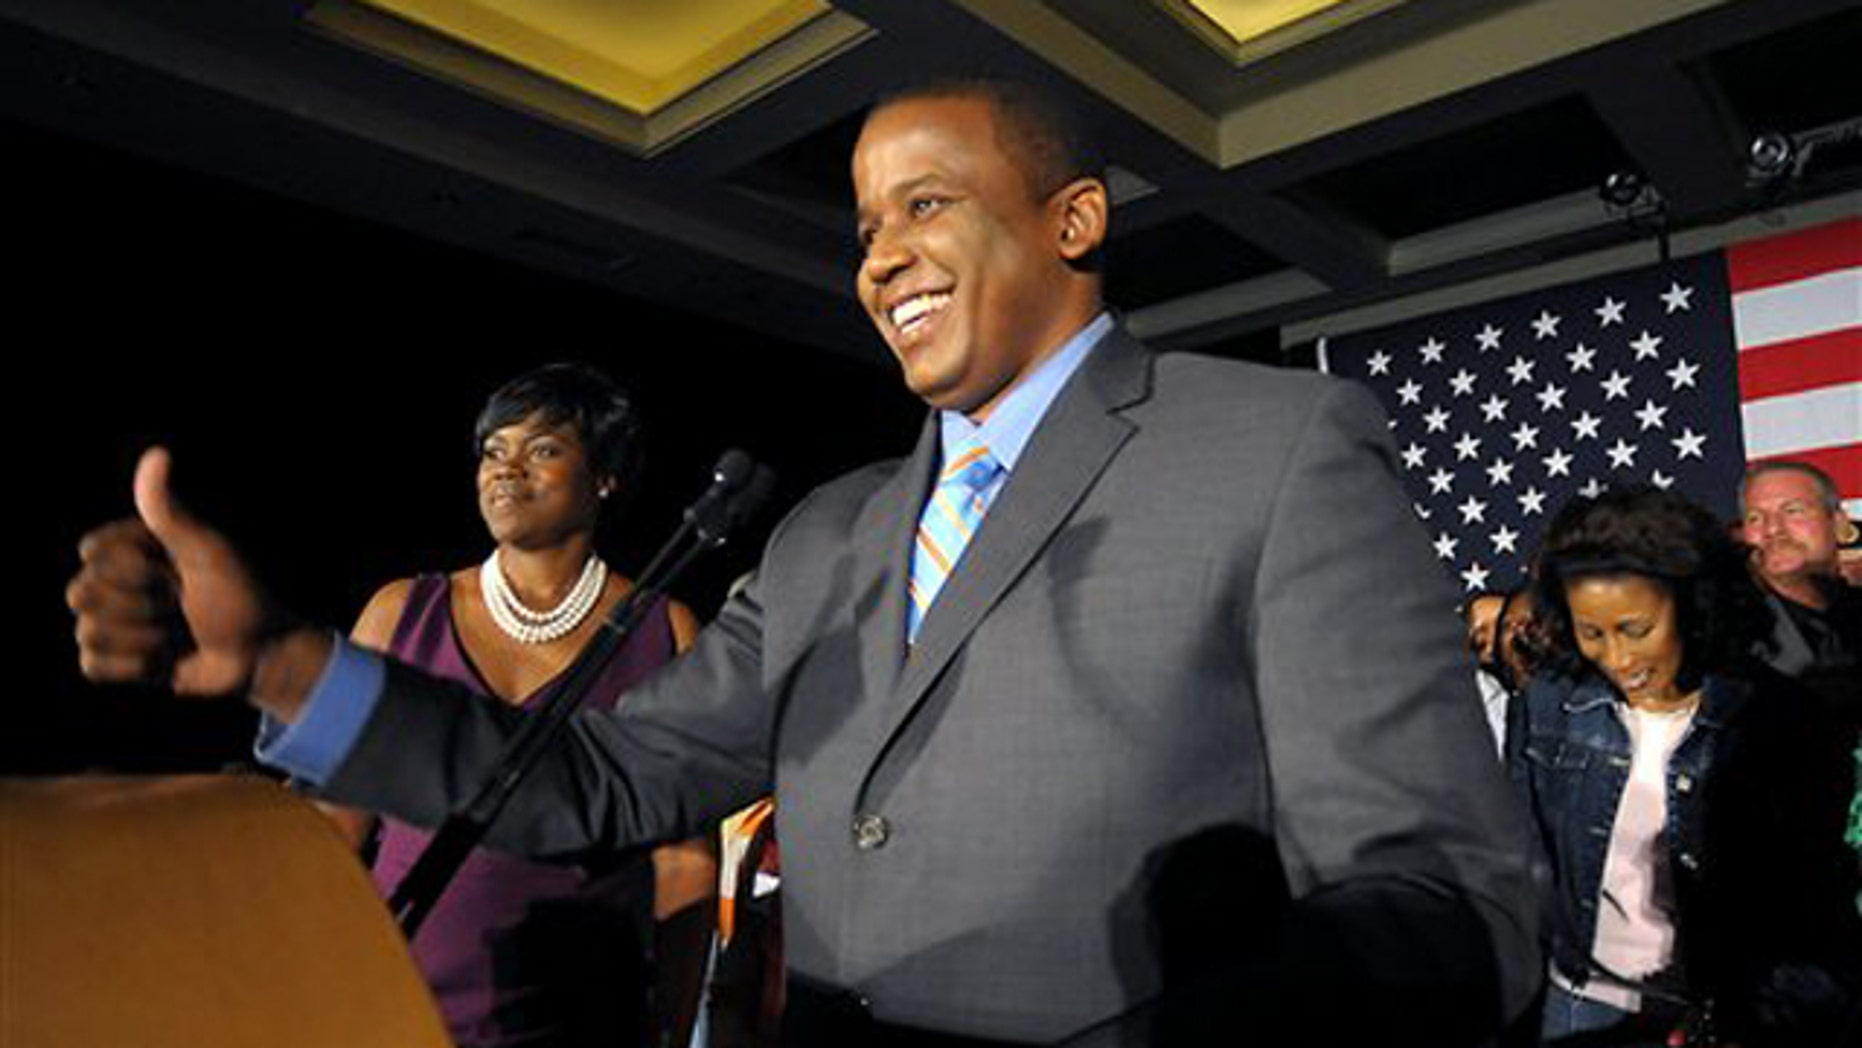 Democratic Senate candidate Kendrick Meek smiles during his victory night celebration in Hollywood, Fla., Aug. 24. (AP Photo)